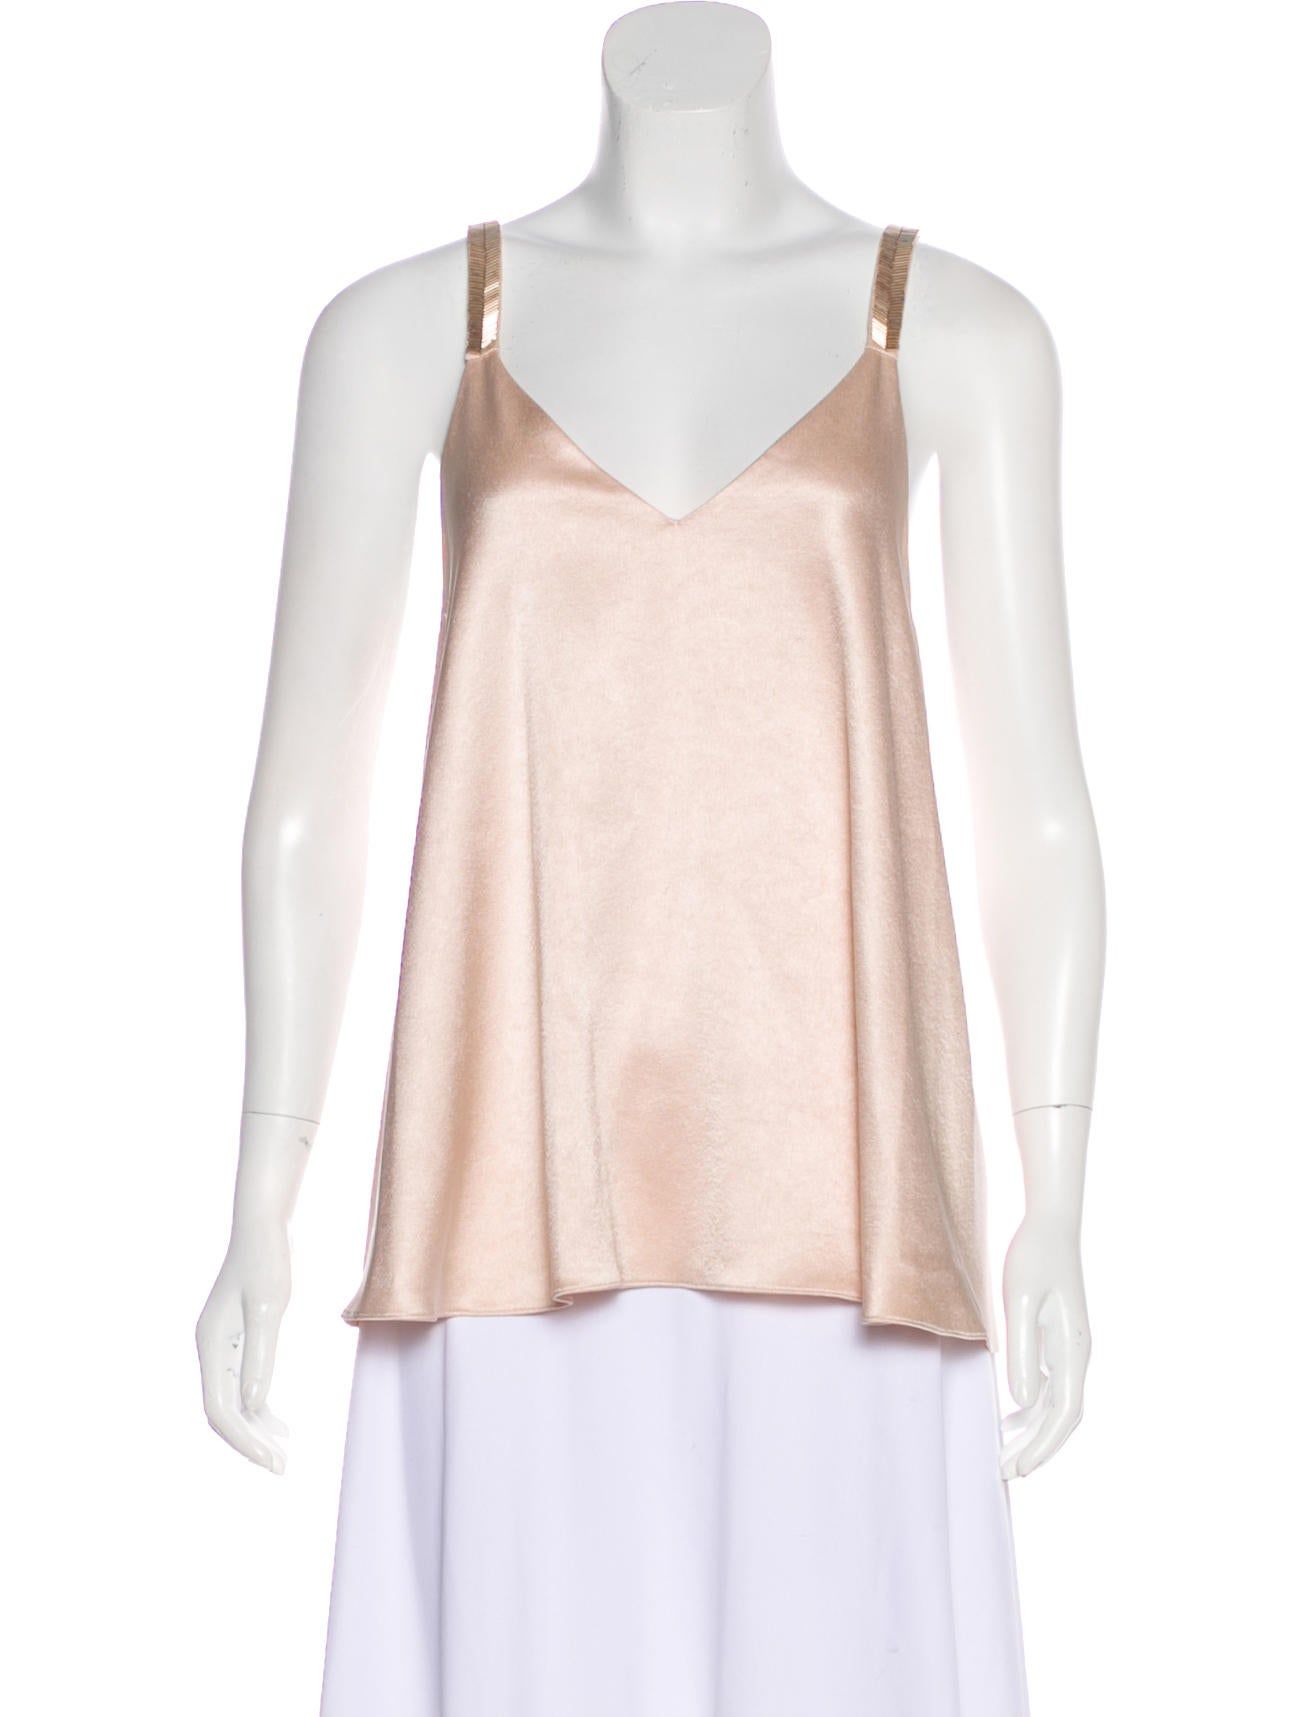 Derek Lam 10 Crosby Embellished Satin Top Amazon Cheap Price Discount Purchase Cheap Sale With Mastercard Recommend Cheap pz4XM